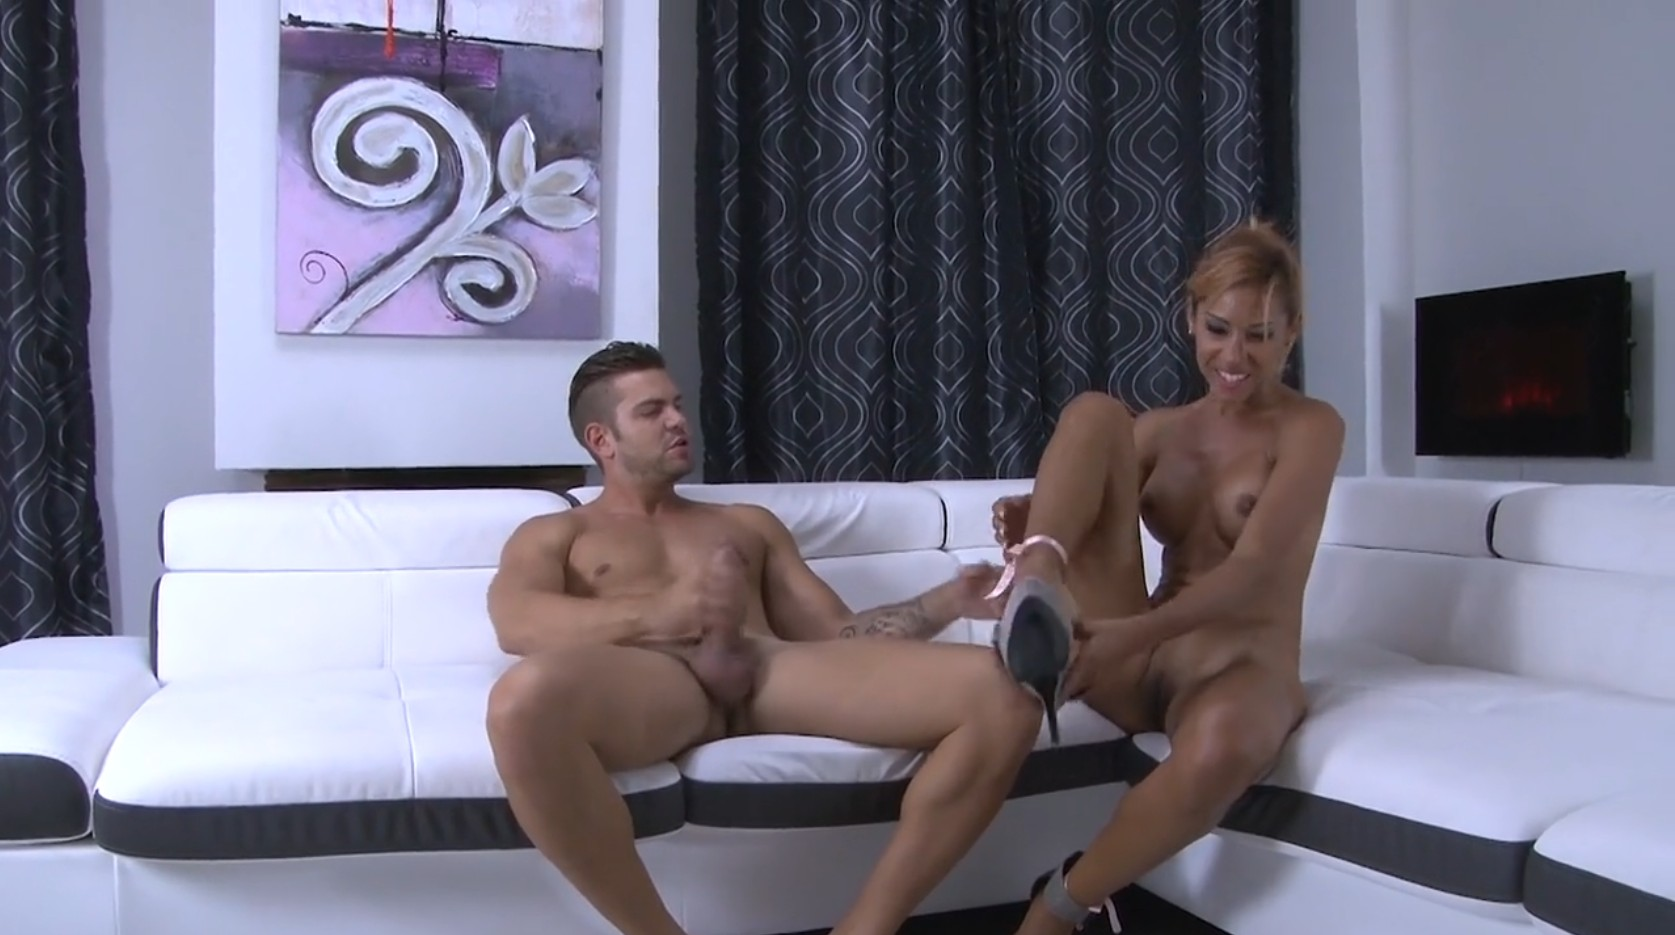 Exotic Beauty On Her First Porn Casting